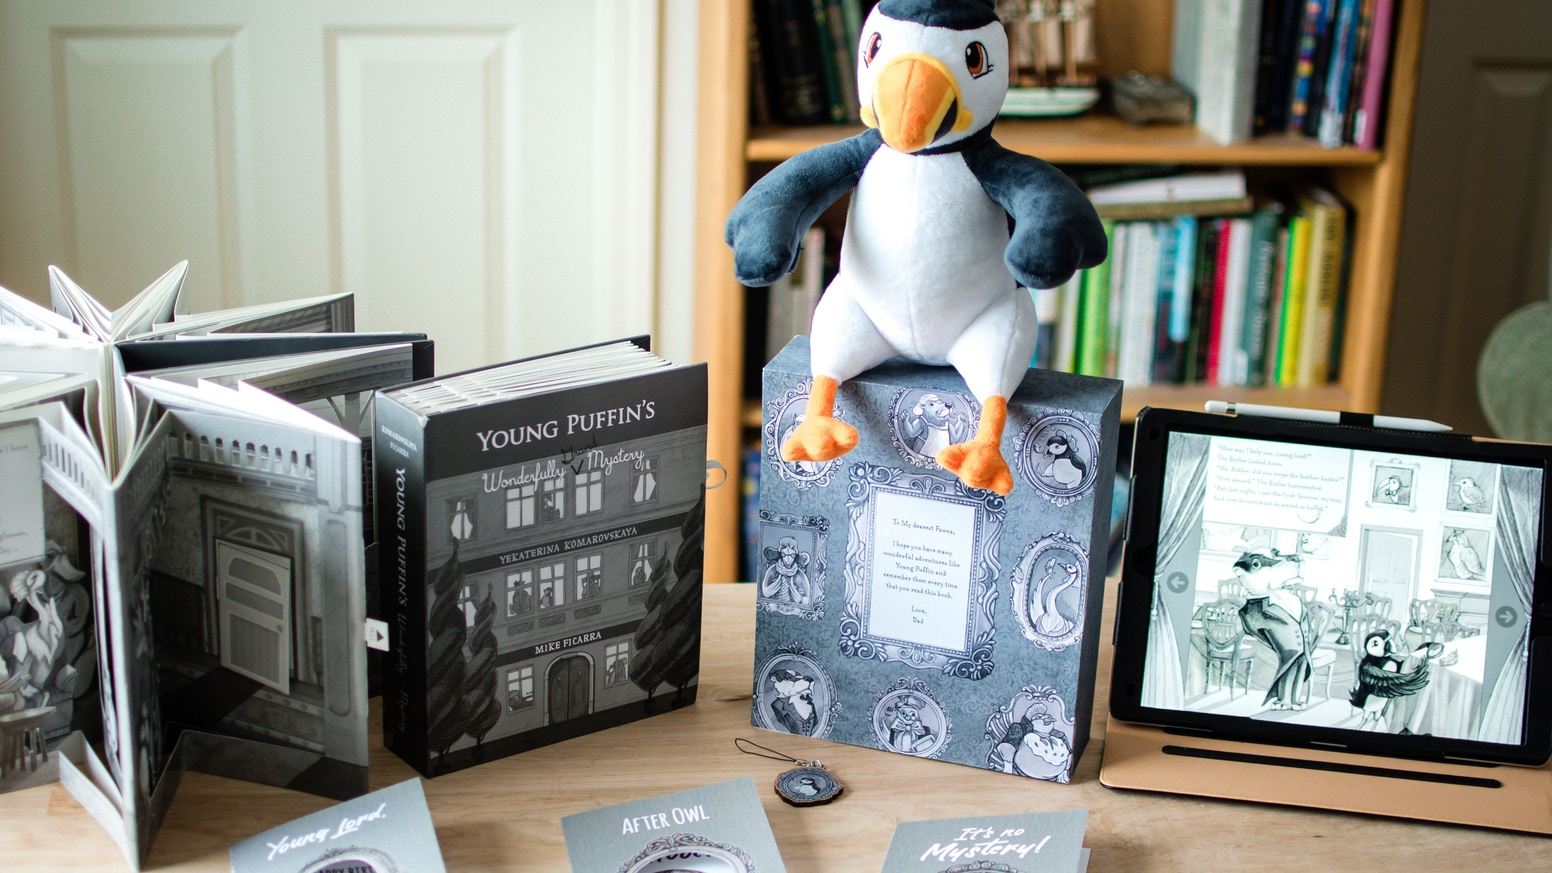 Young Puffin's Wonderfully Grand Mystery is a carousel-bound pop-up book for kids.